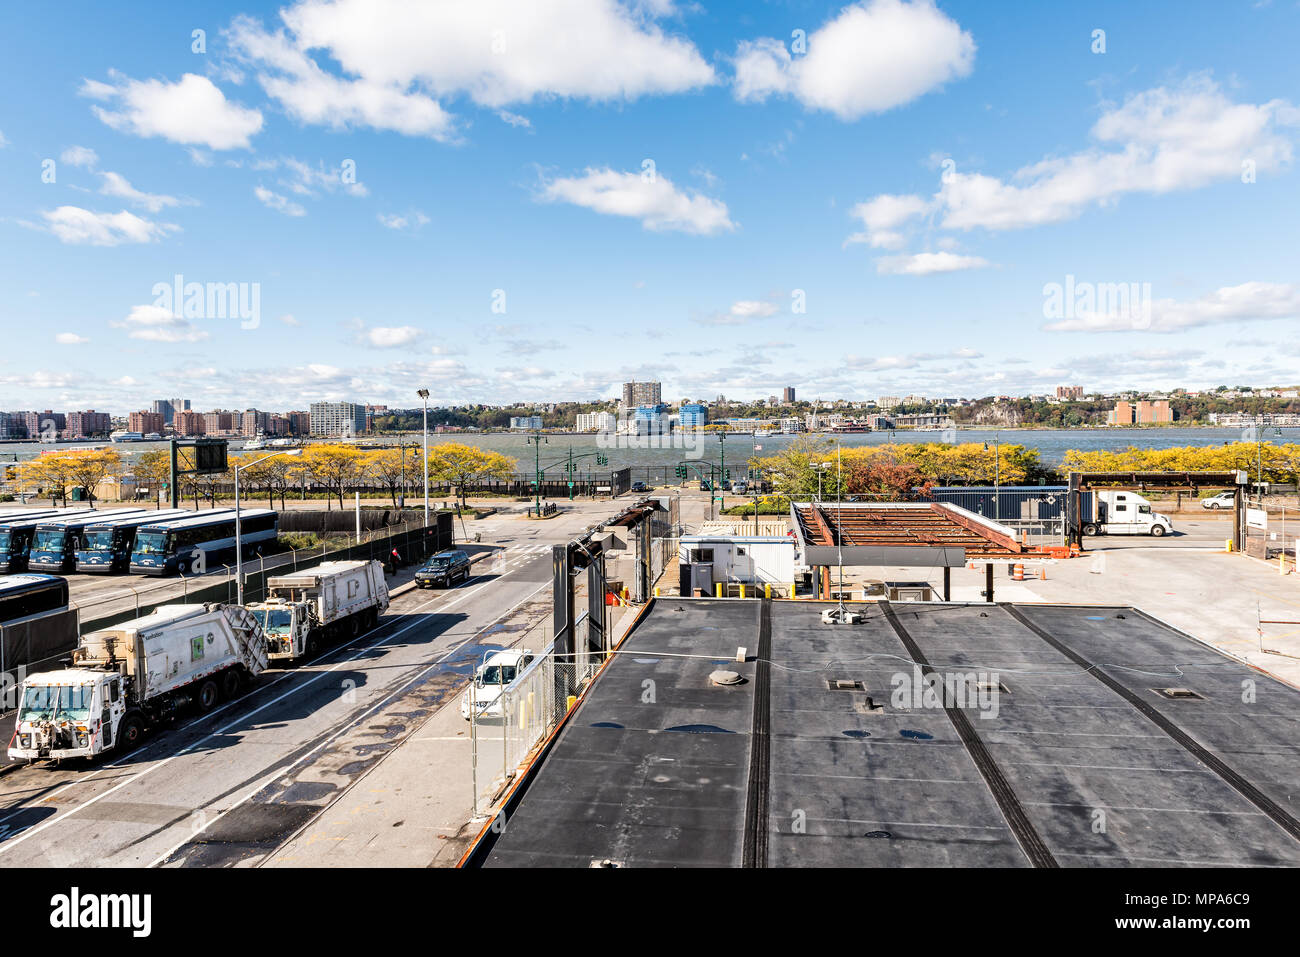 New York City, USA - October 30, 2017: View of Hudson River from highline, high line, urban in NYC with buses, people, in Chelsea West Side by Hudson  Stock Photo